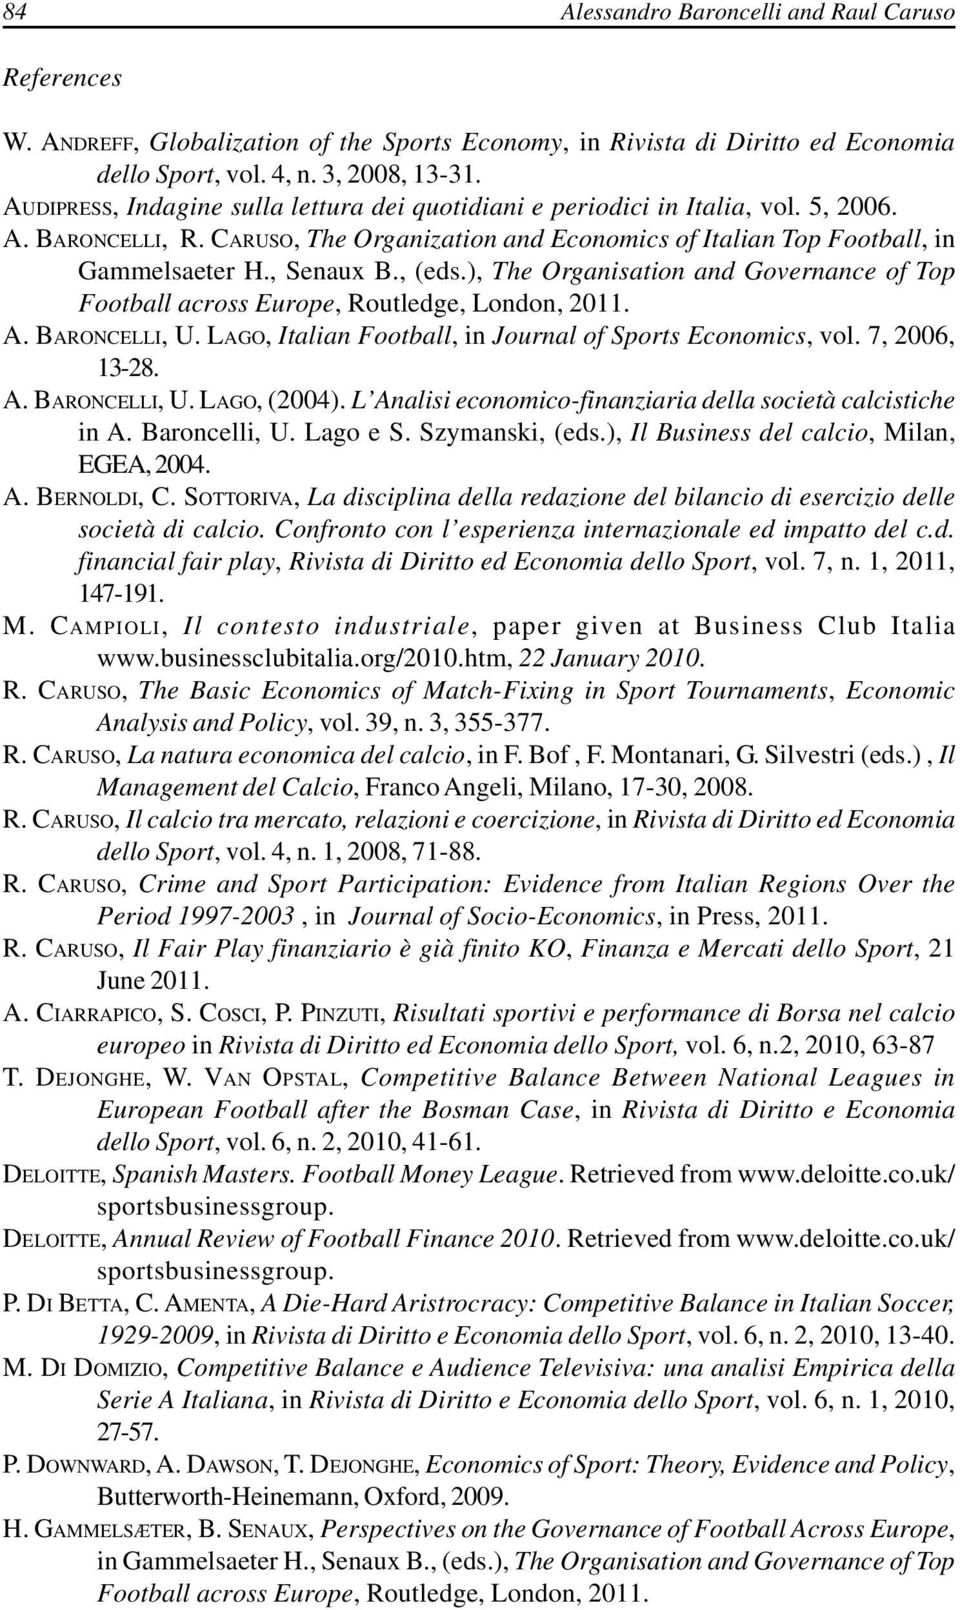 , (eds.), The Organisation and Governance of Top Football across Europe, Routledge, London, 2011. A. BARONCELLI, U. LAGO, Italian Football, in Journal of Sports Economics, vol. 7, 2006, 13-28. A. BARONCELLI, U. LAGO, (2004).